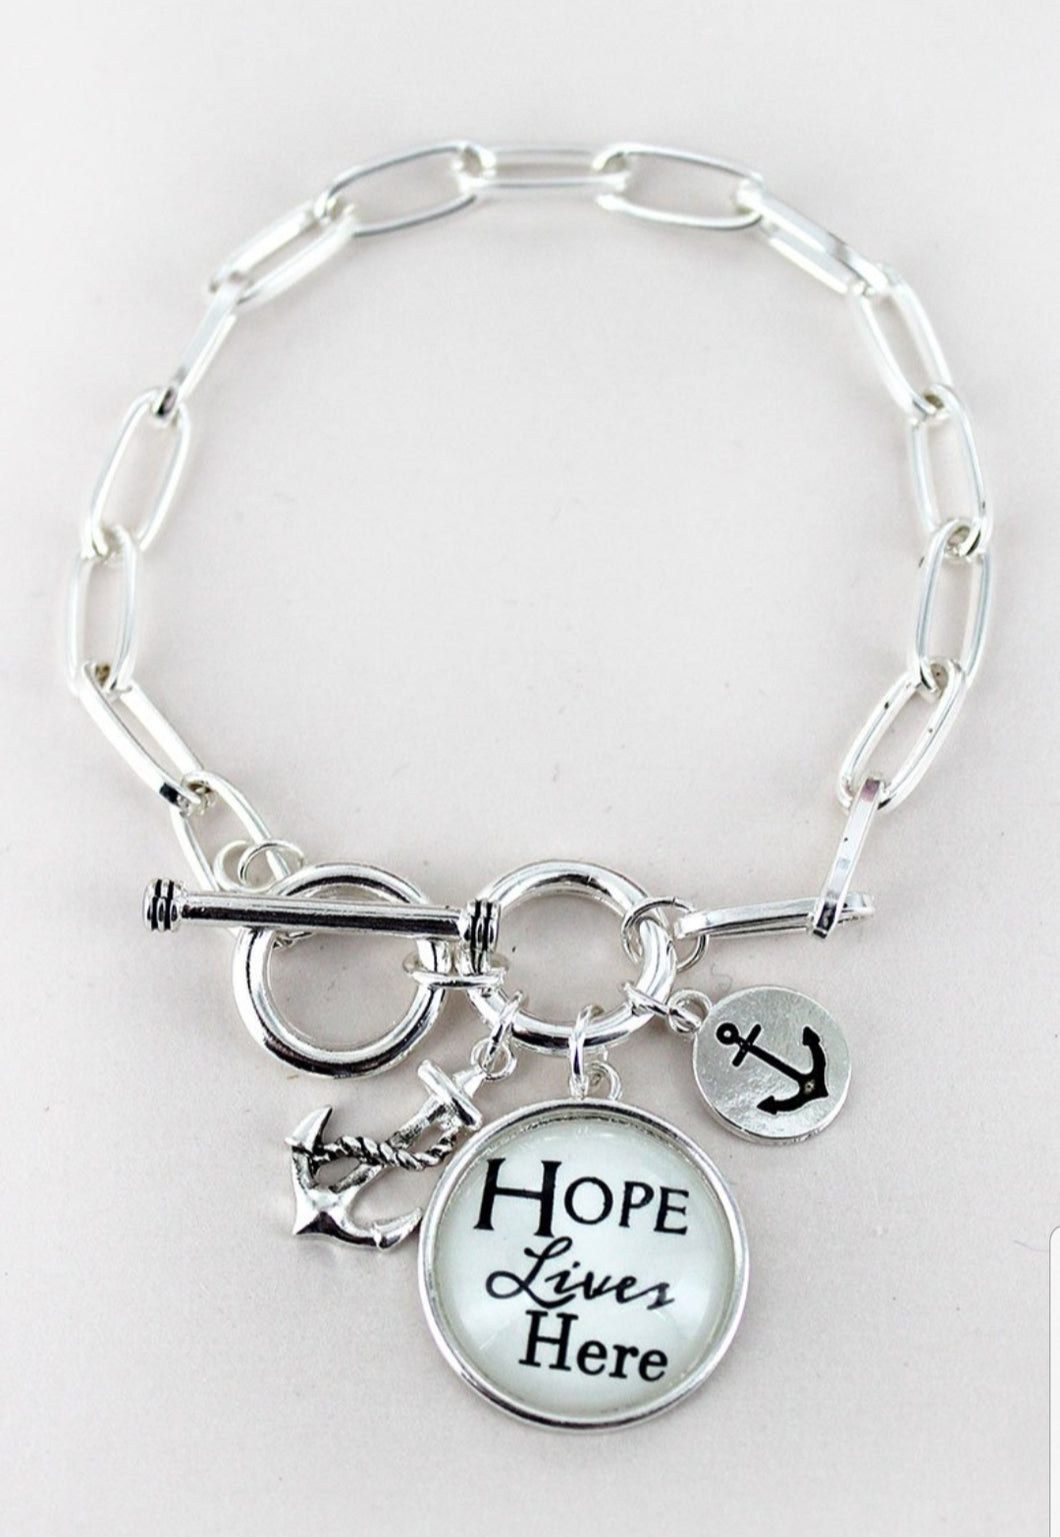 SILVERTONE 'HOPE LIVES HERE' BUBBLE CHARM CLUSTER TOGGLE BRACELET-AVAILABLE FOR PRESALE UNTIL MAY 5TH